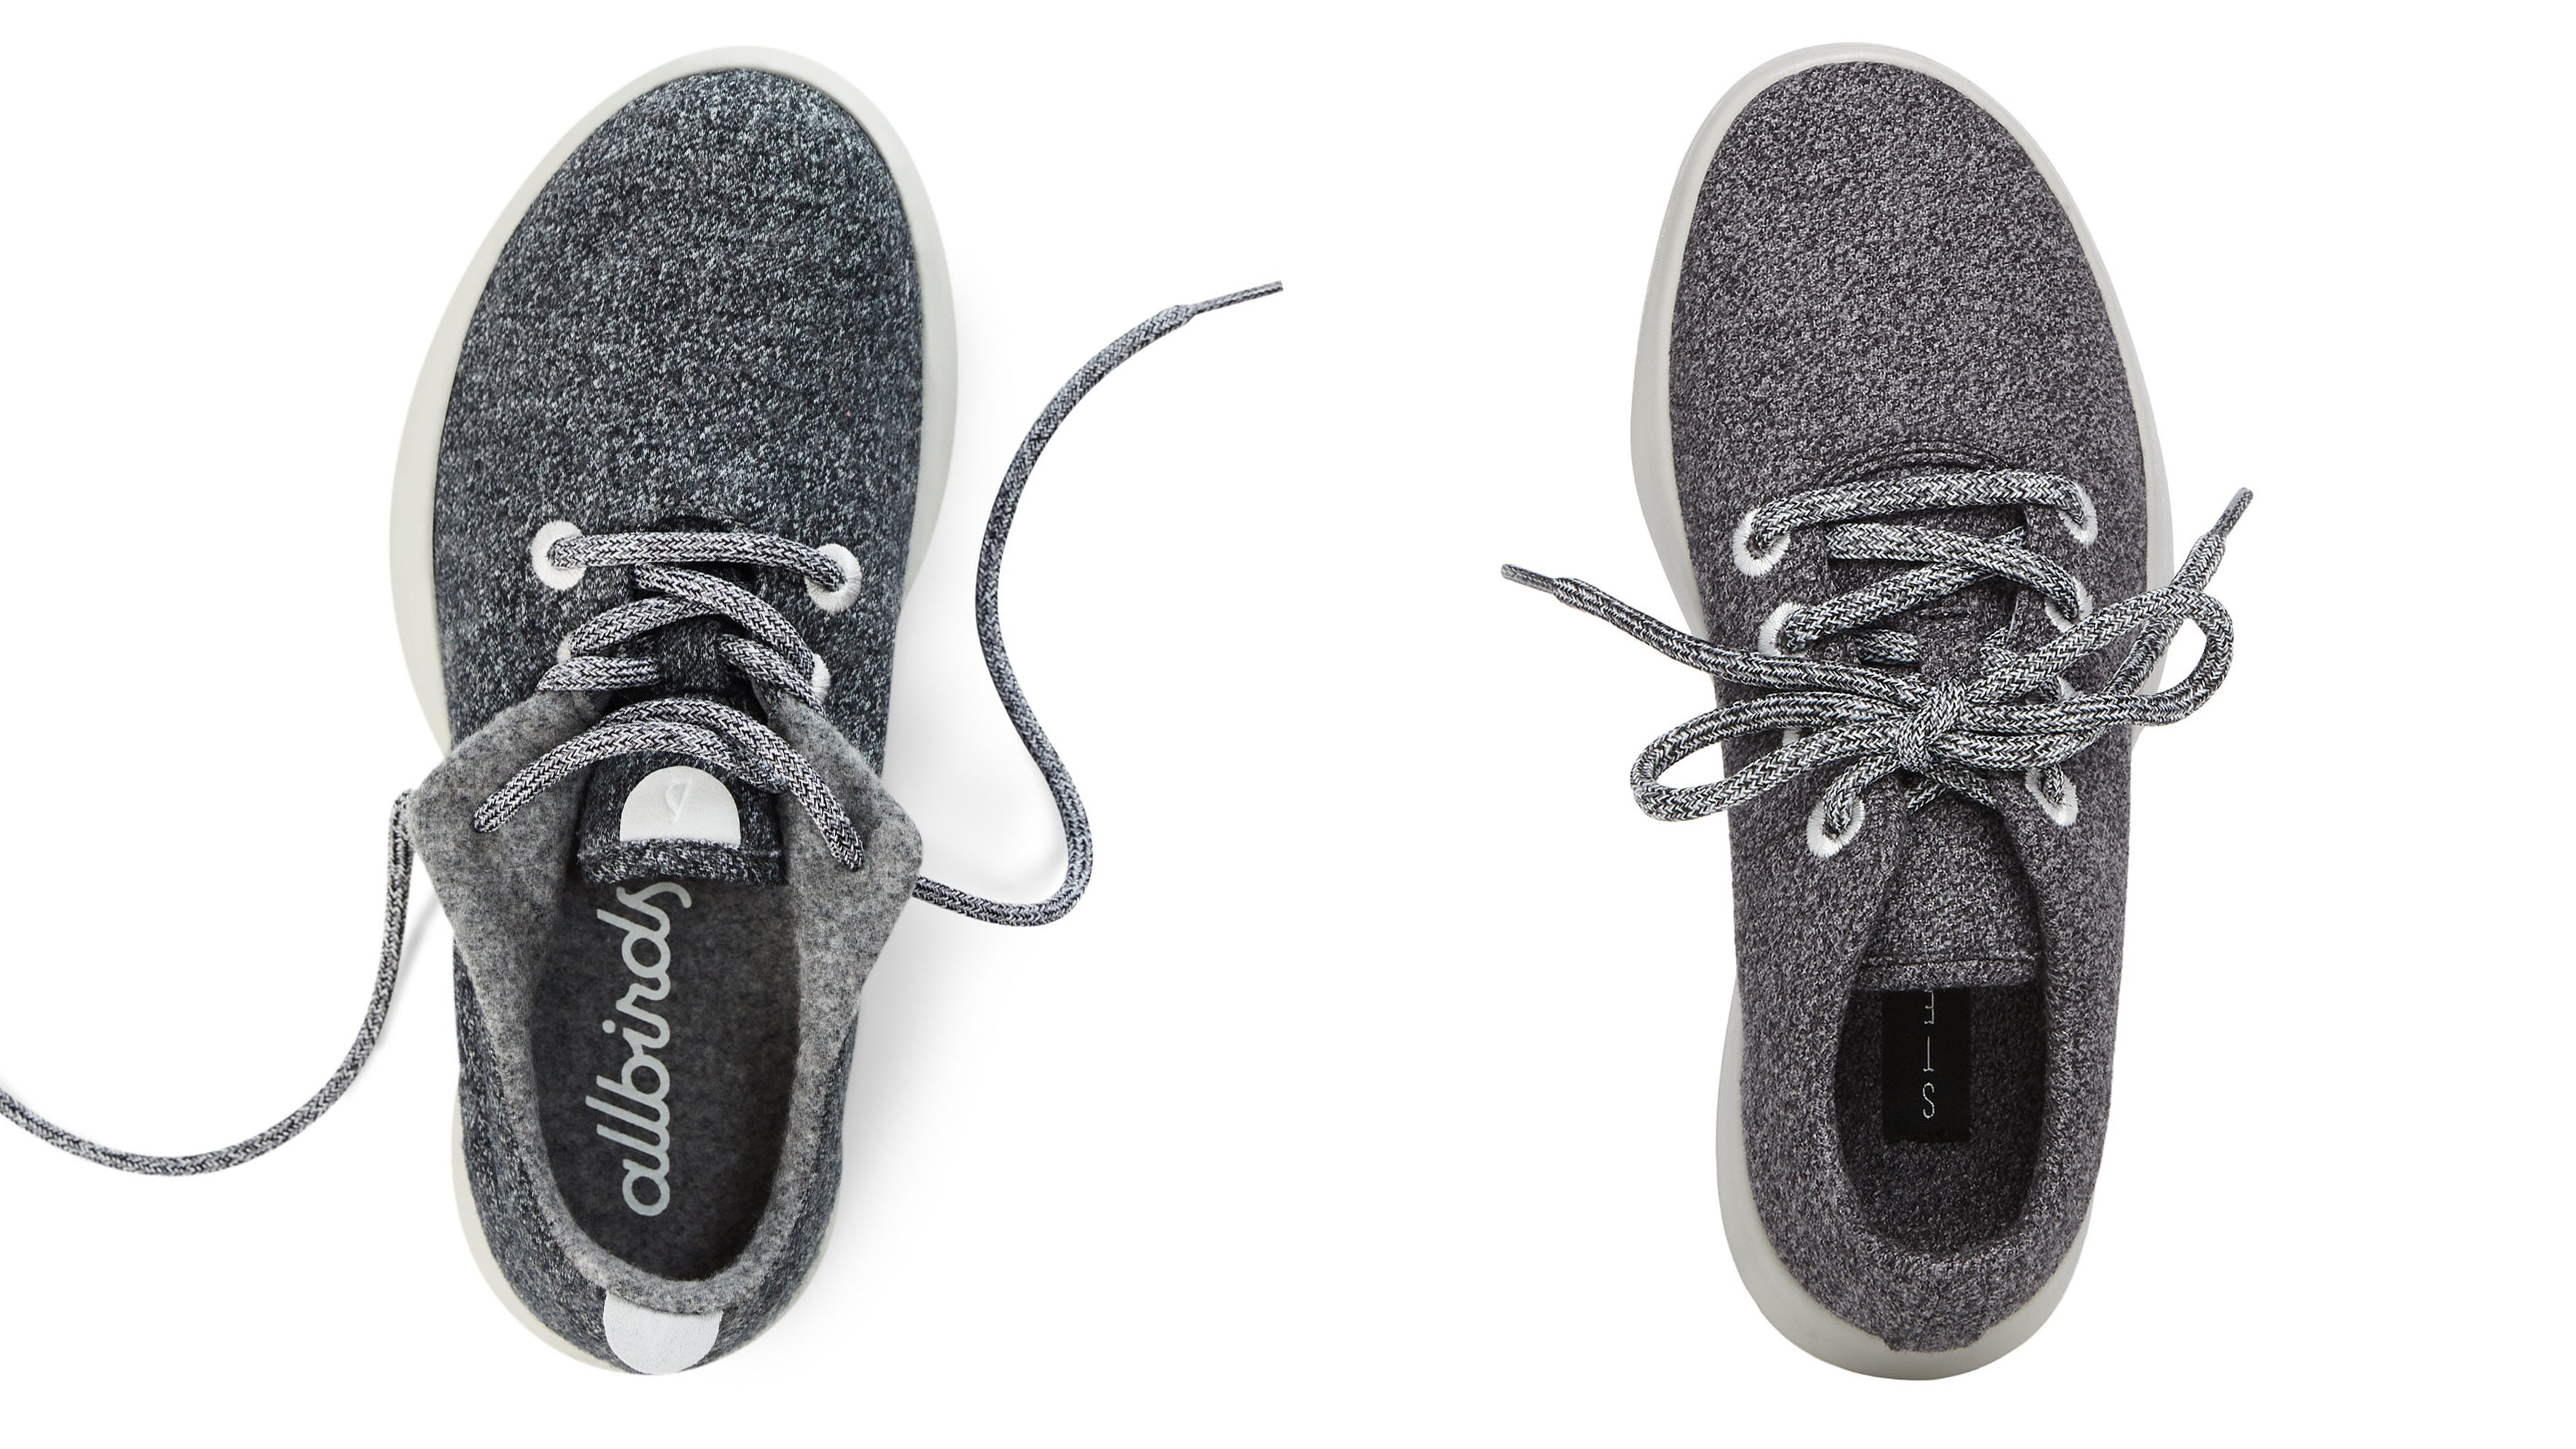 The Allbirds wool runner (left) and Steve by Steve Madden women's traveler sneaker (right) | Source: Courtesy